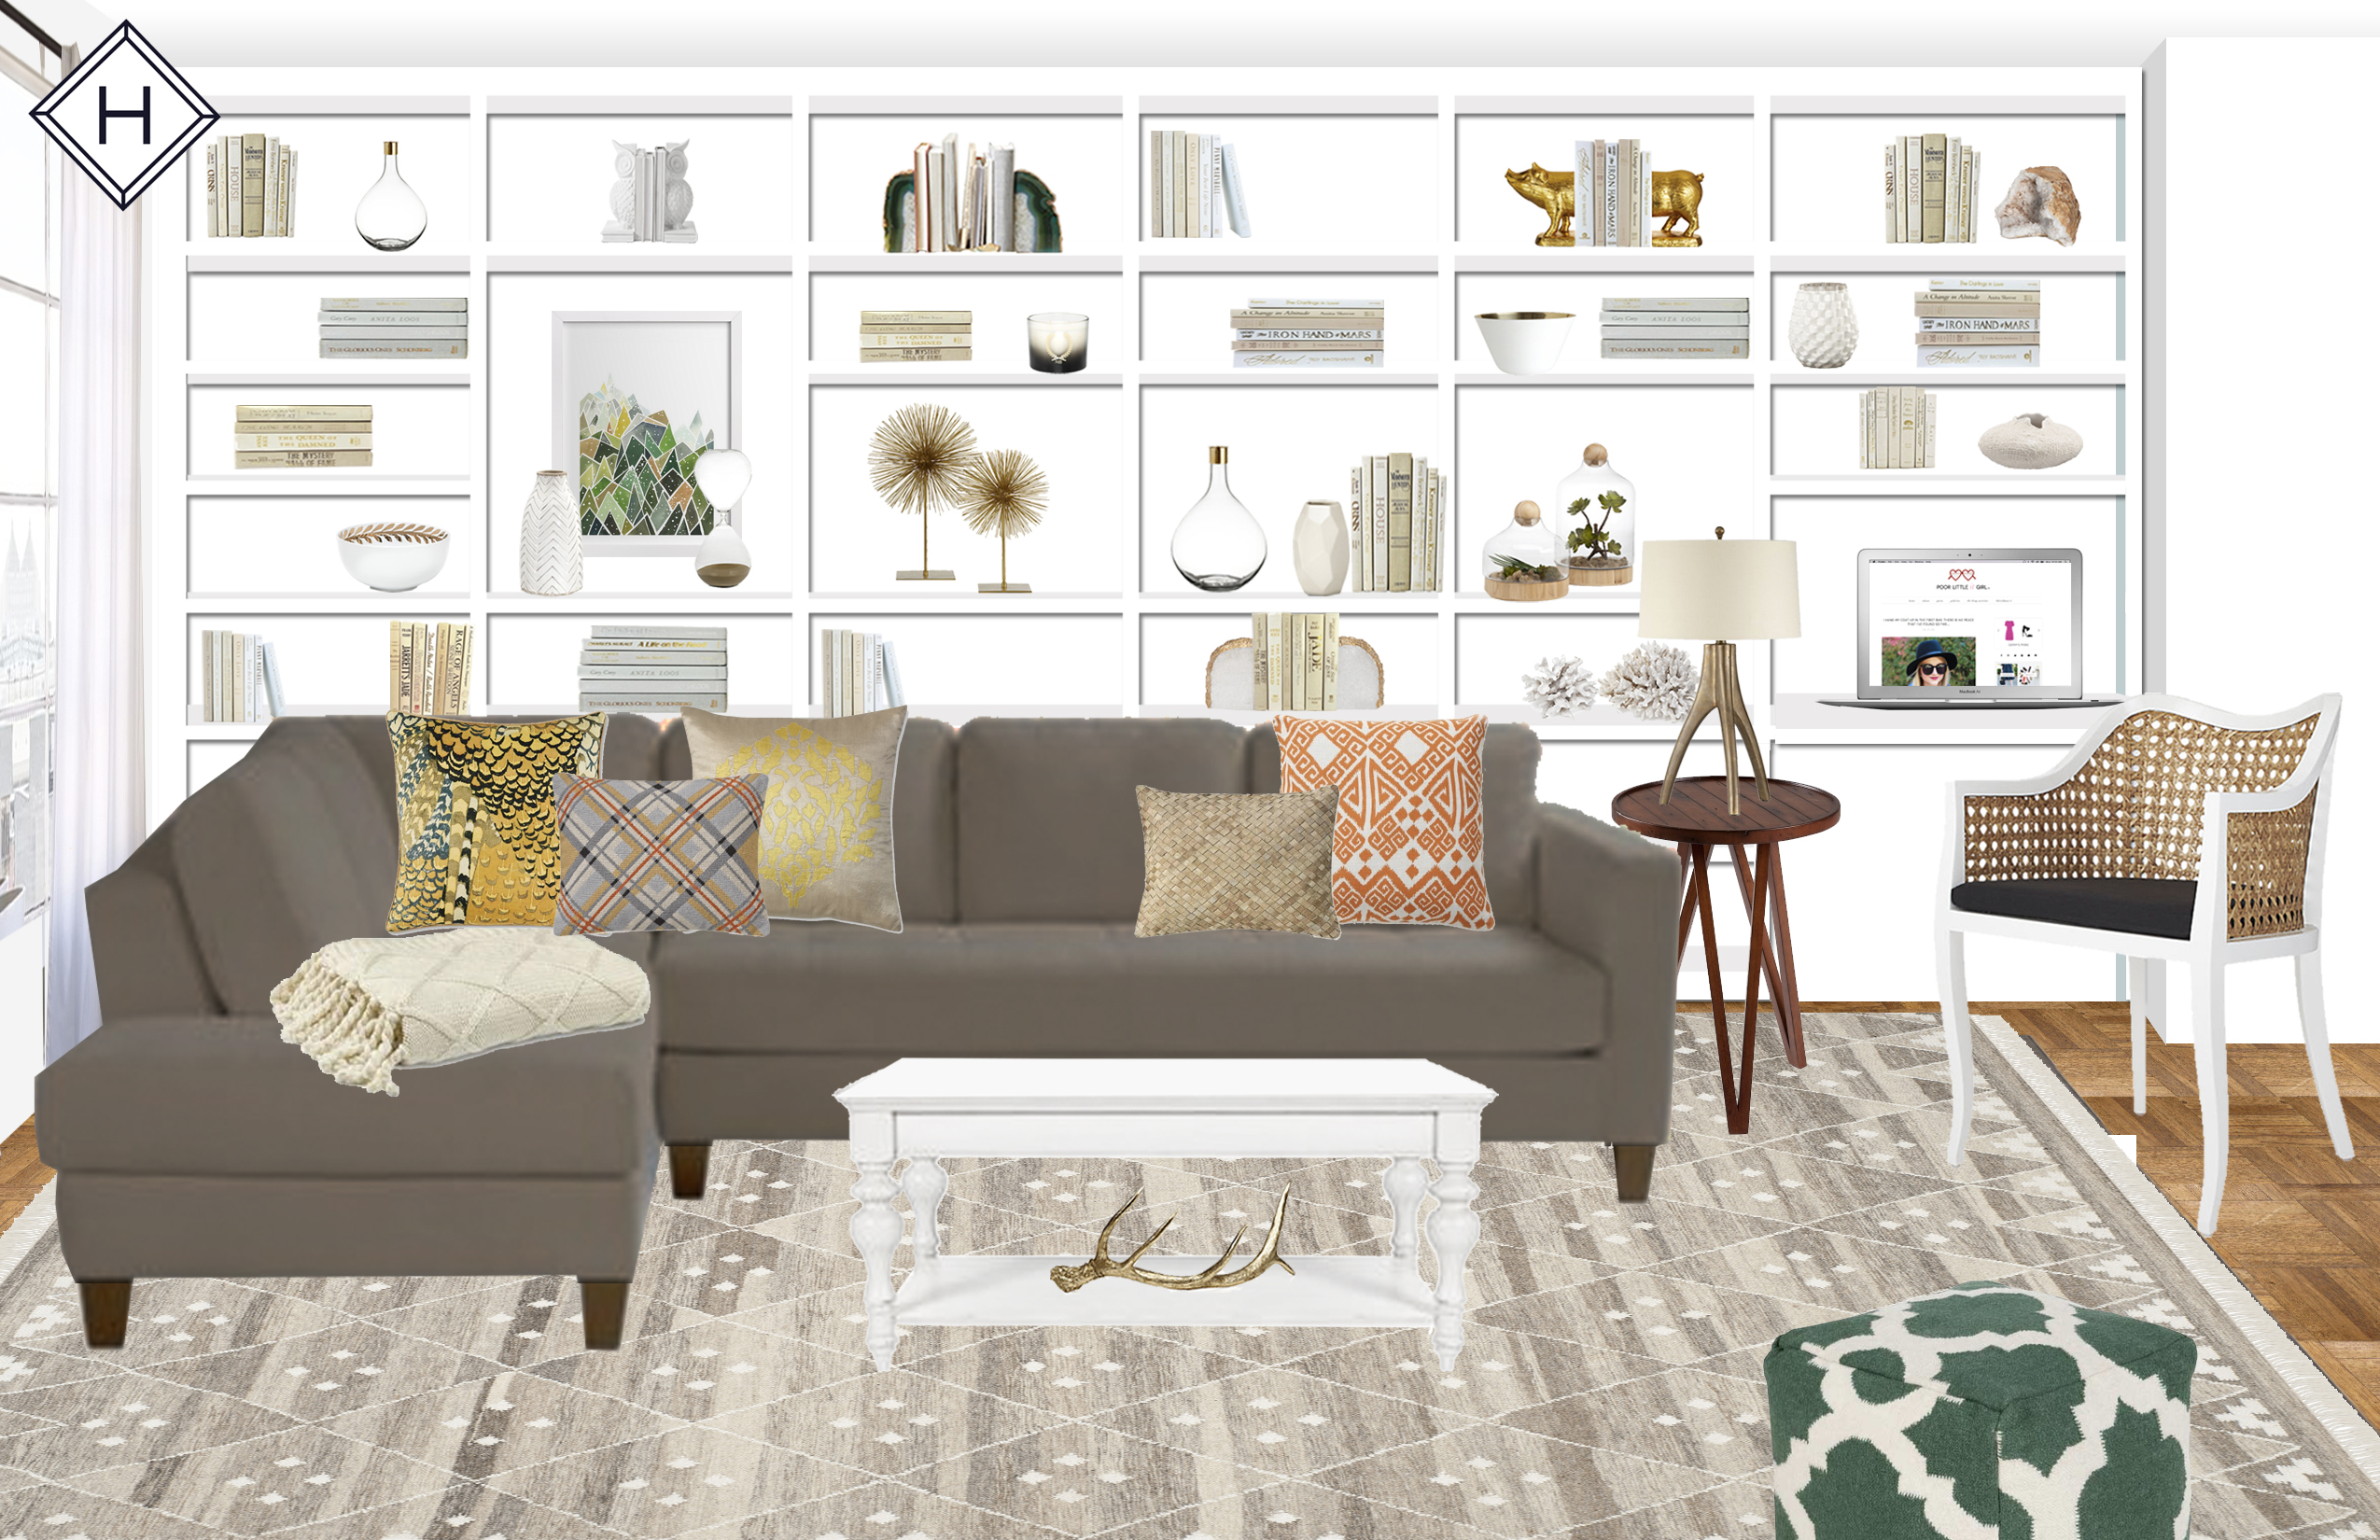 How you can afford an interior designer on a budget - OL Lifestyle - ^